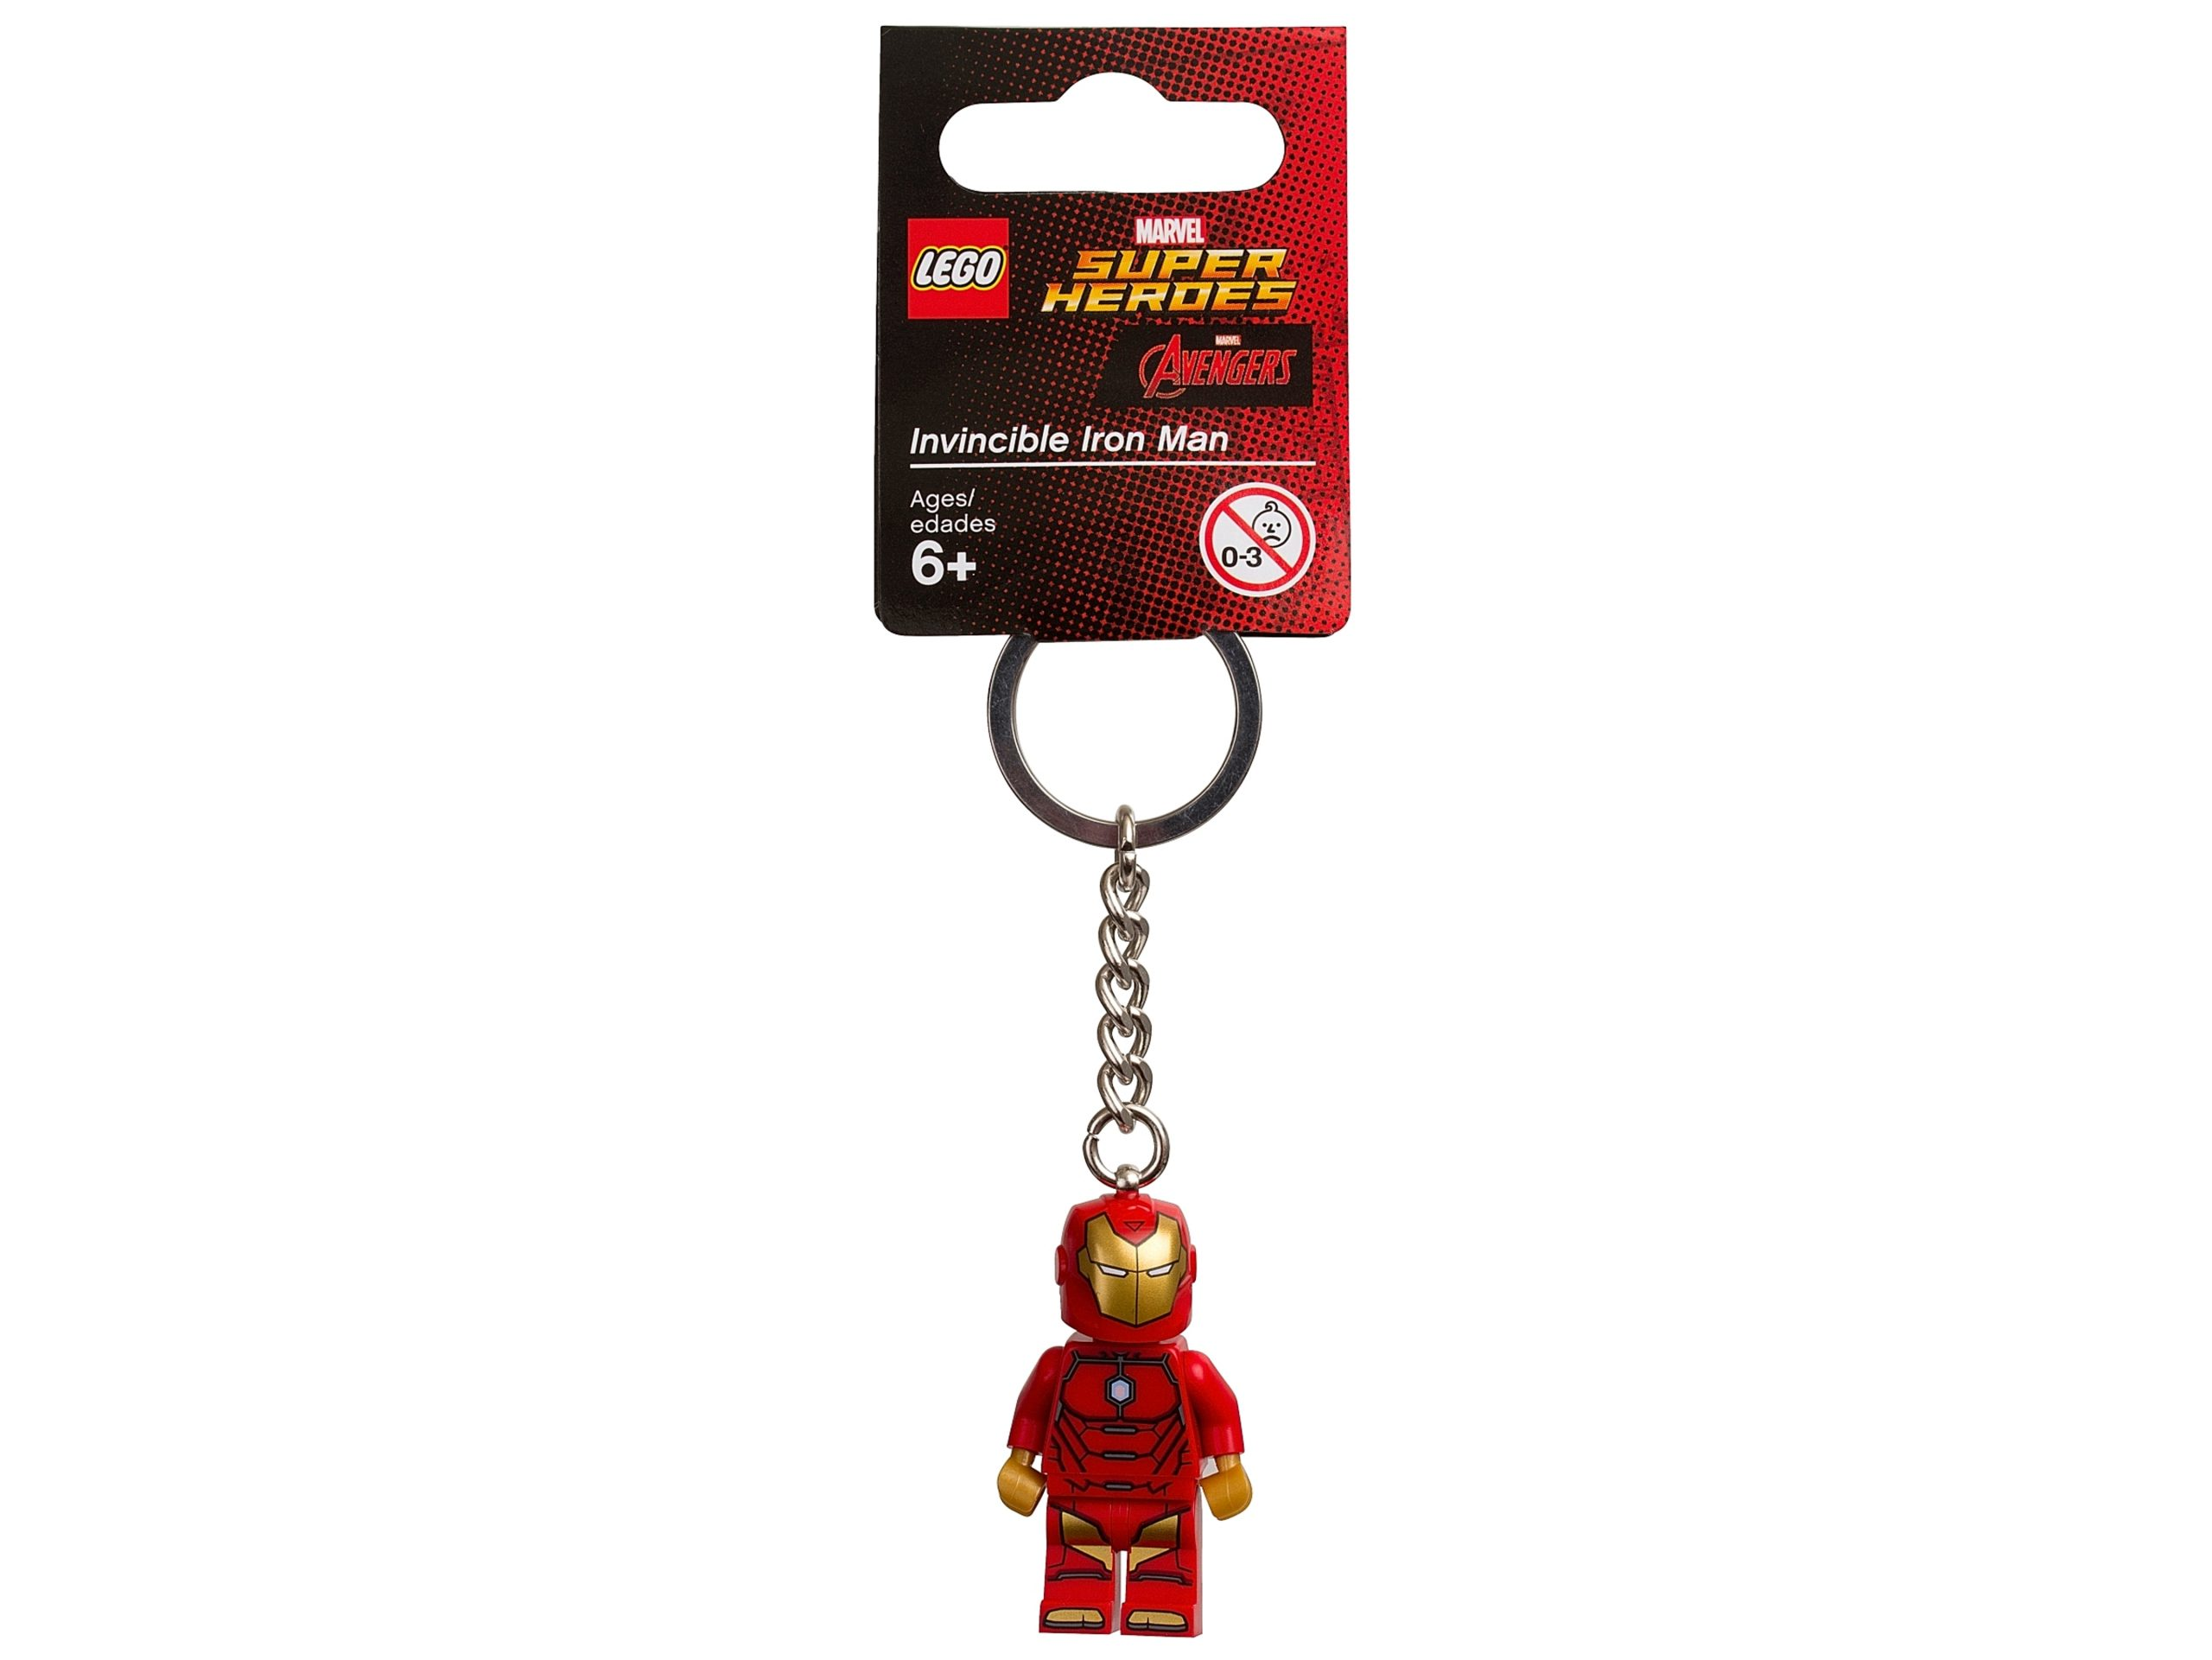 lego 853706 marvel super heroes invincible iron man key chain scaled